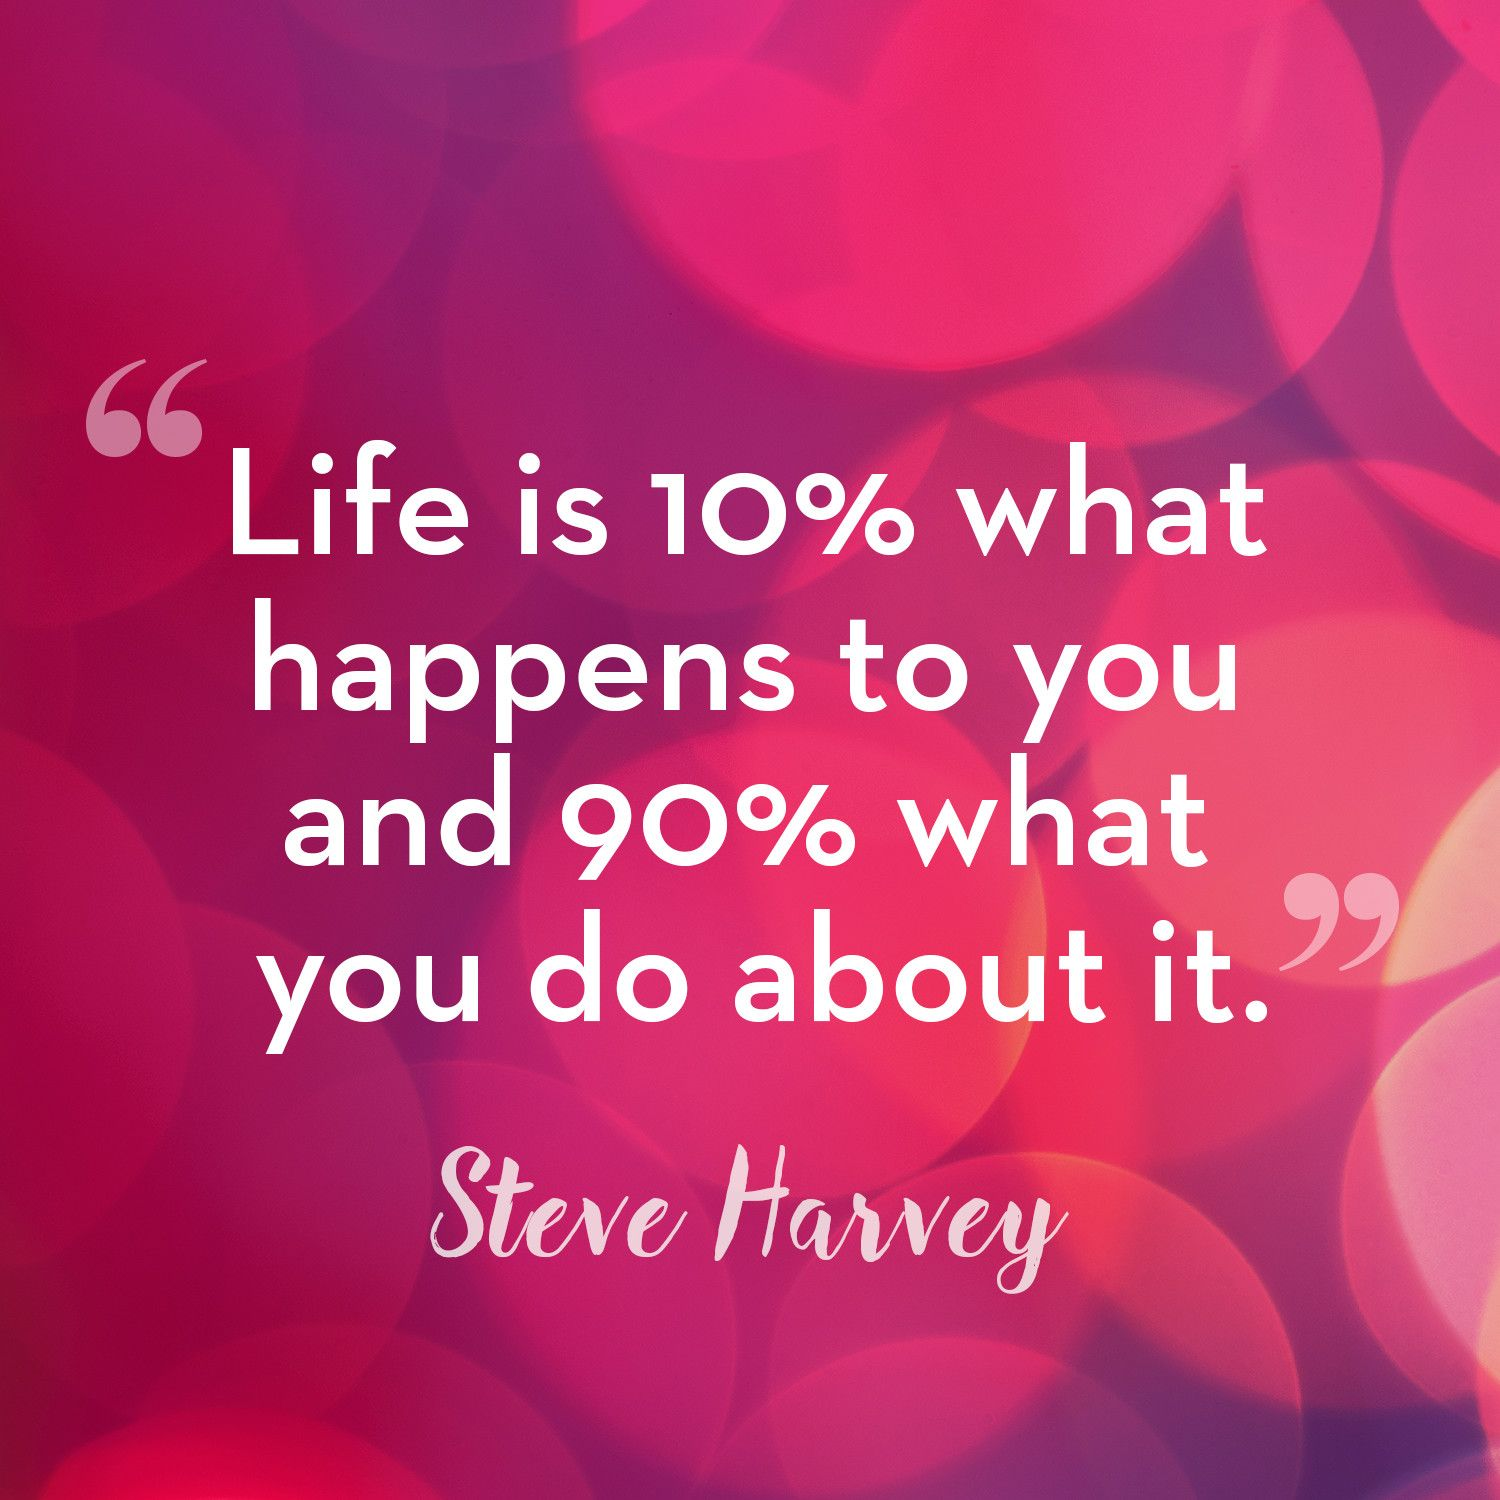 Life After Divorce Quotes 50 Best Relationship Quotes From Steve Harvey  Steve Harvey